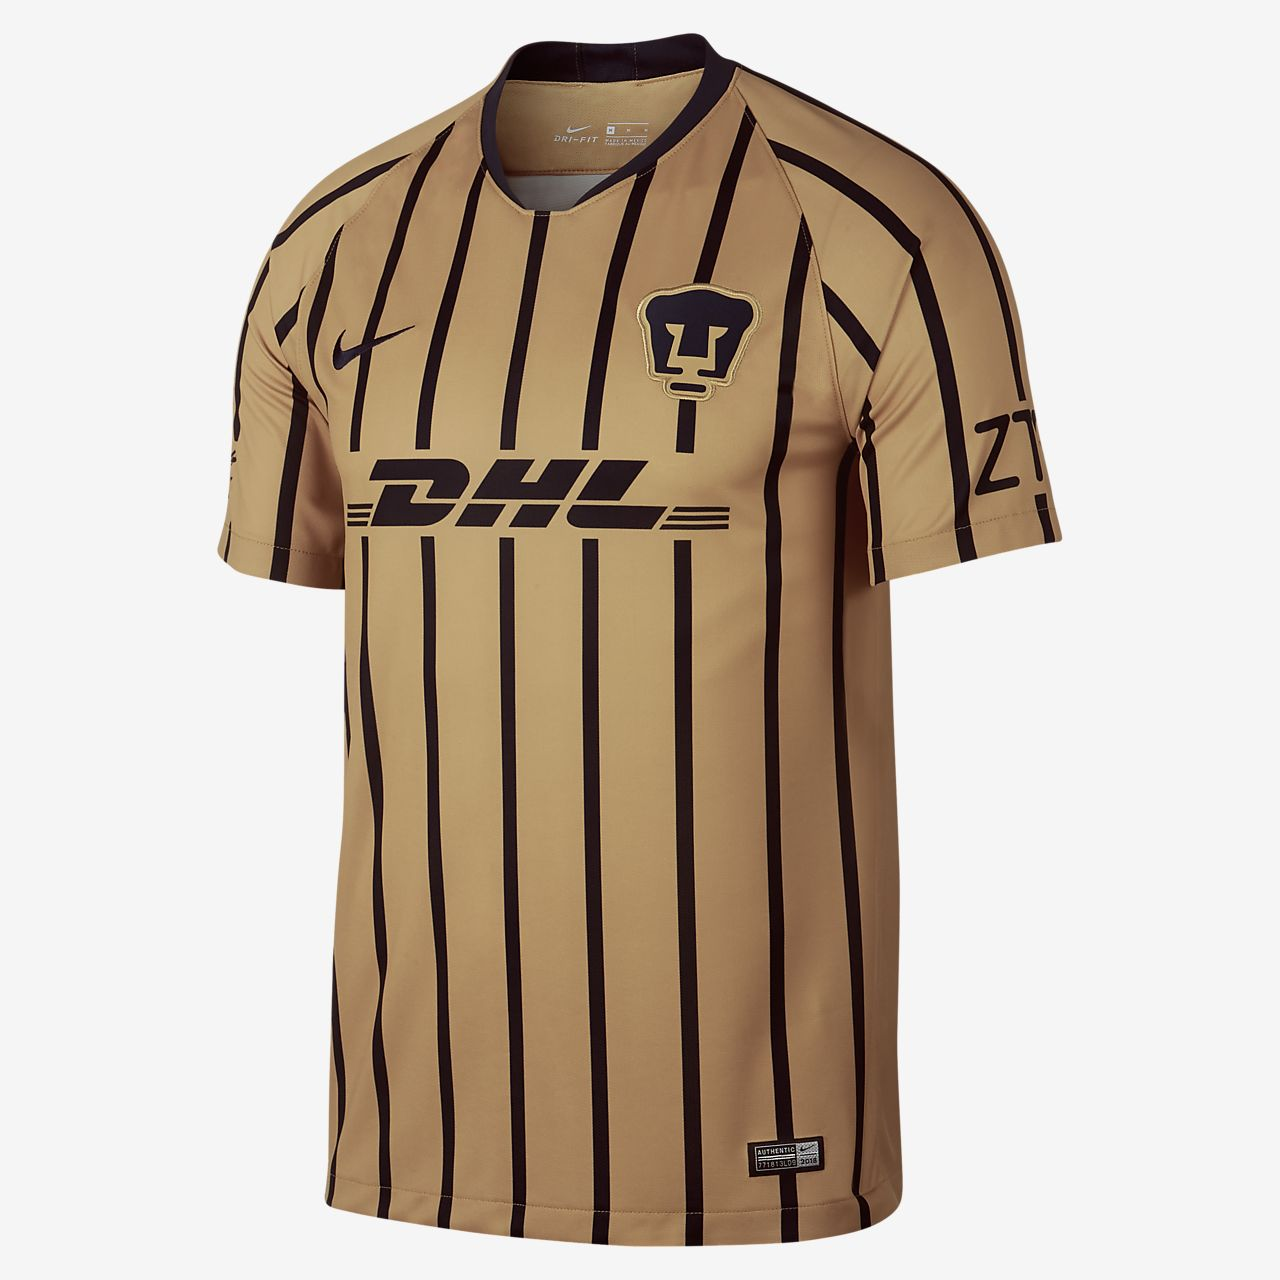 c289fc6c153 2018 19 Pumas UNAM Stadium Away Men s Football Shirt. Nike.com AU